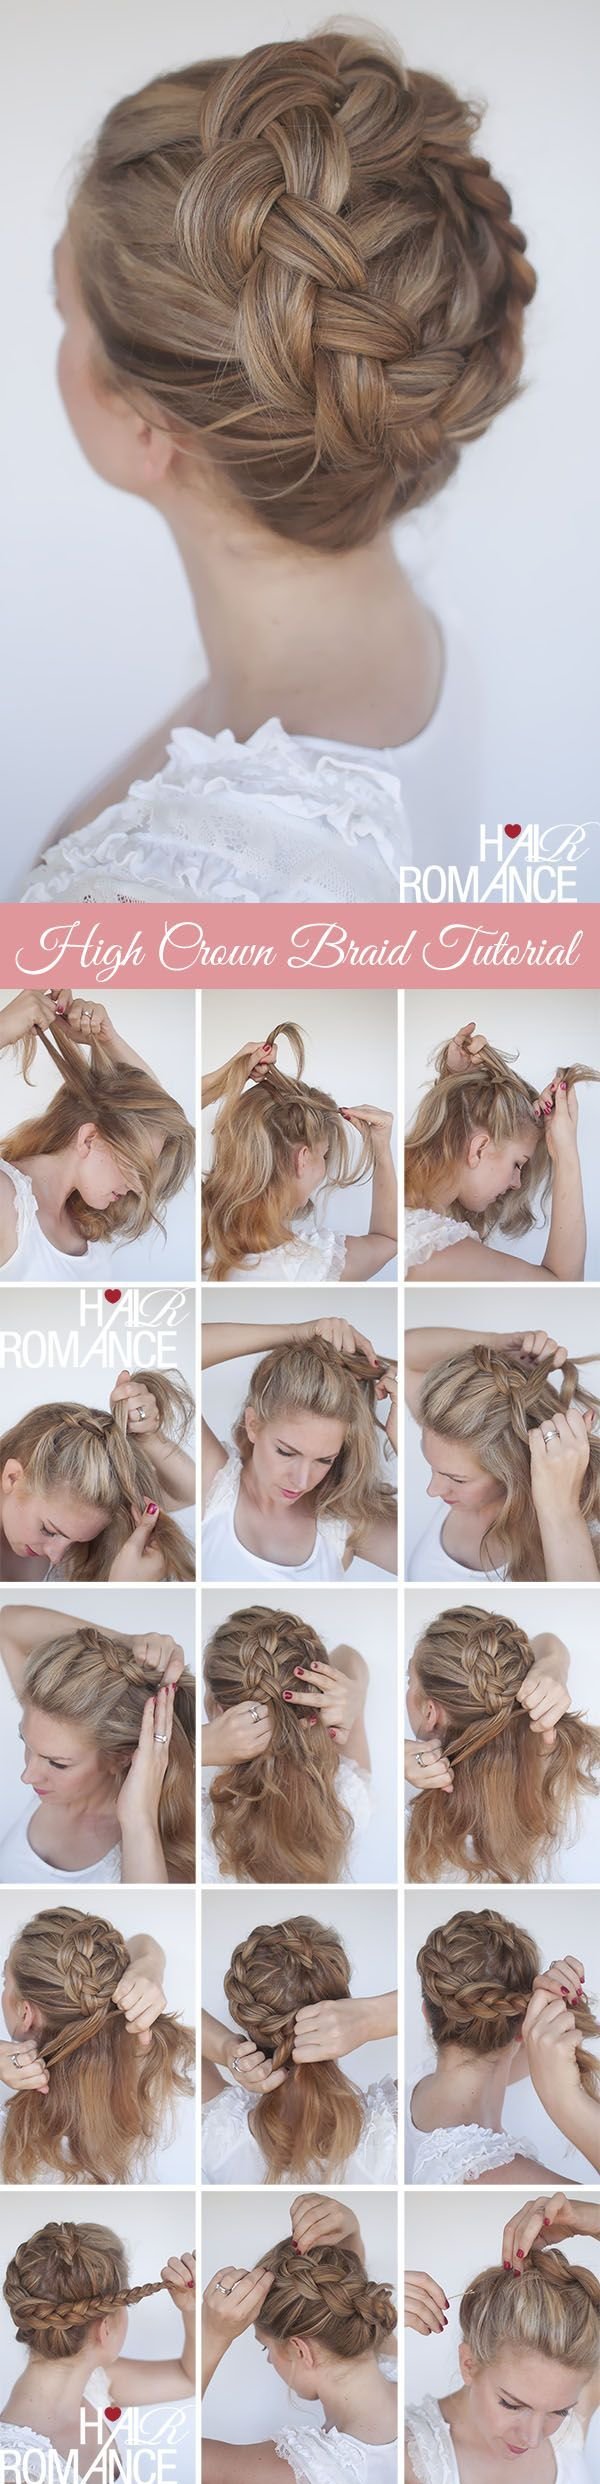 Hair Romance - braided crown hairstyle tutorial #hair #hairdo #hairstyles #hairstylesforlonghair #hairtips #tutorial #DIY #stepbystep #longhair #howto #practical #guide #everydayhairstyle #easyhairstyle #idea #inspiration #style